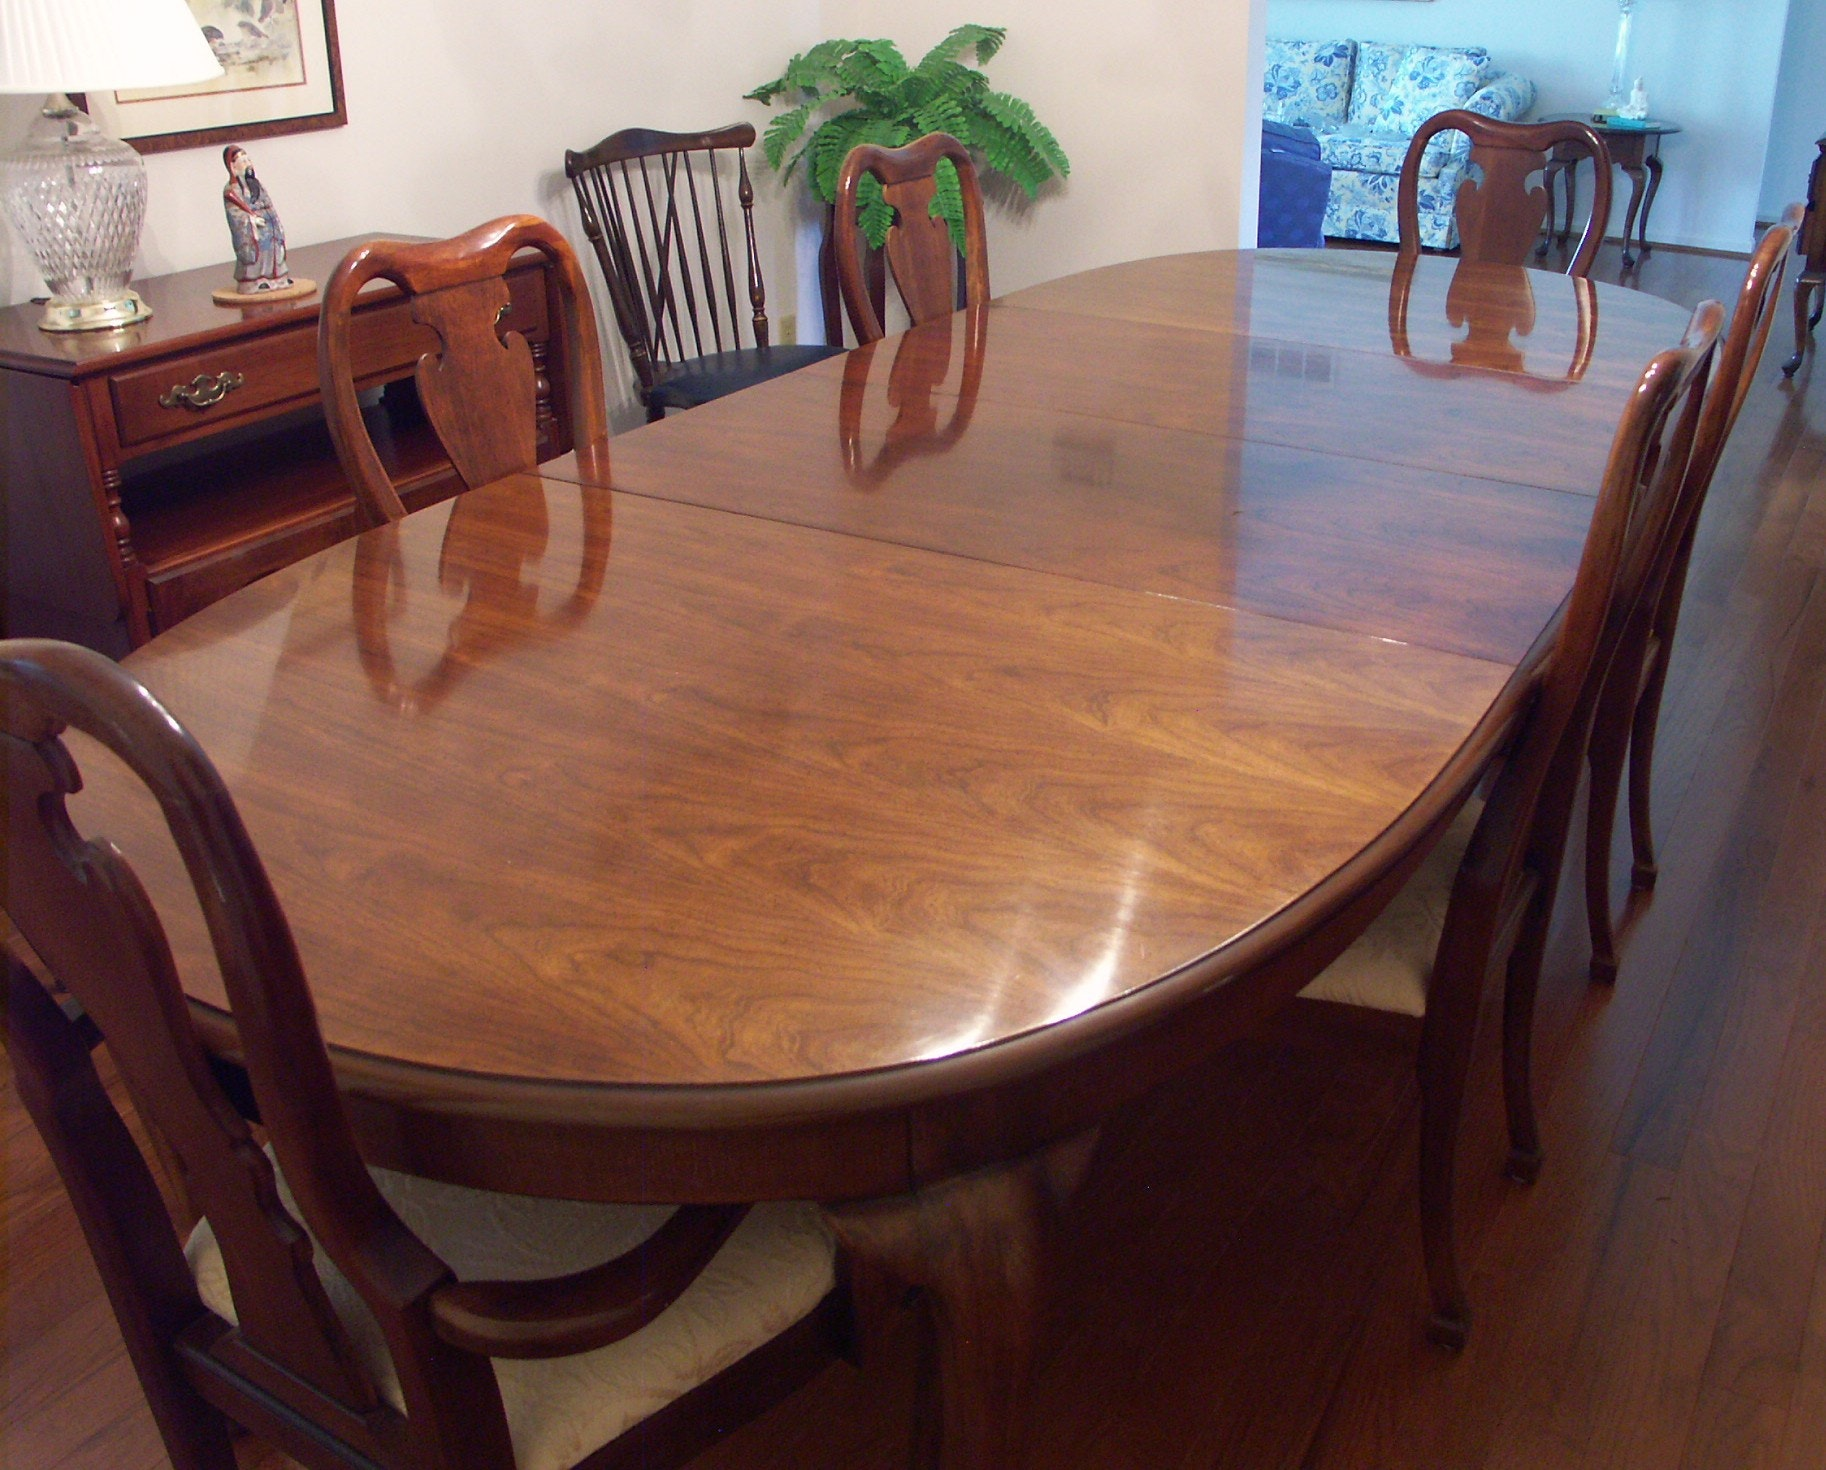 Thomasville Queen Anne Dining Table and Six Chairs EBTH : PICT0092JPGixlibrb 11 from www.ebth.com size 1400 x 1127 jpeg 282kB